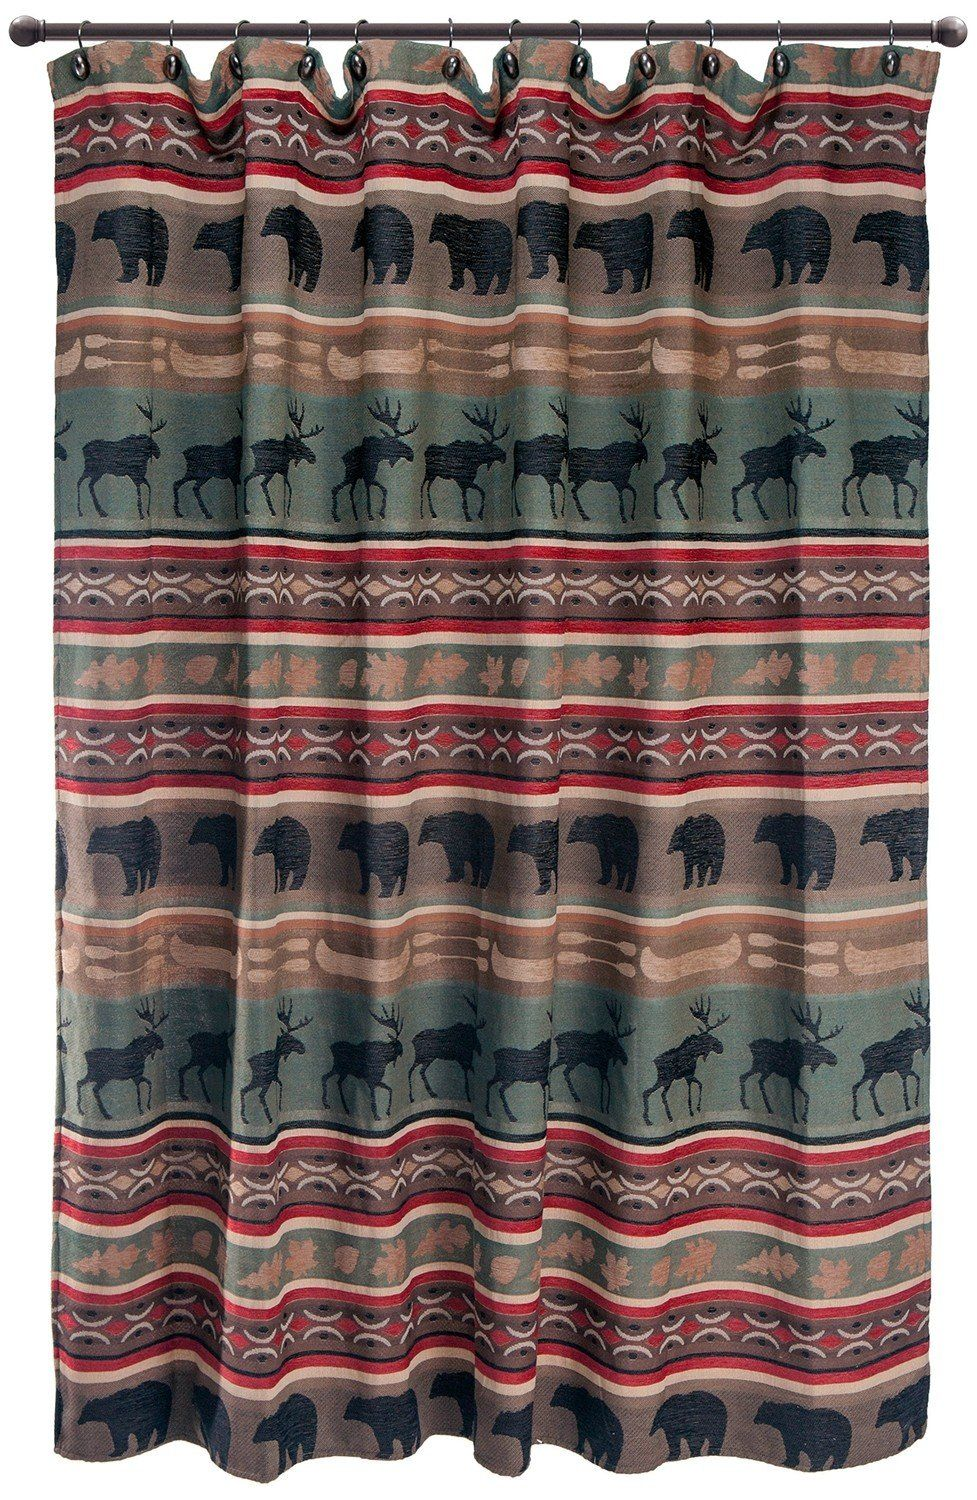 Backwoods Shower Curtain Rustic Curtains Bathroom Red Curtains